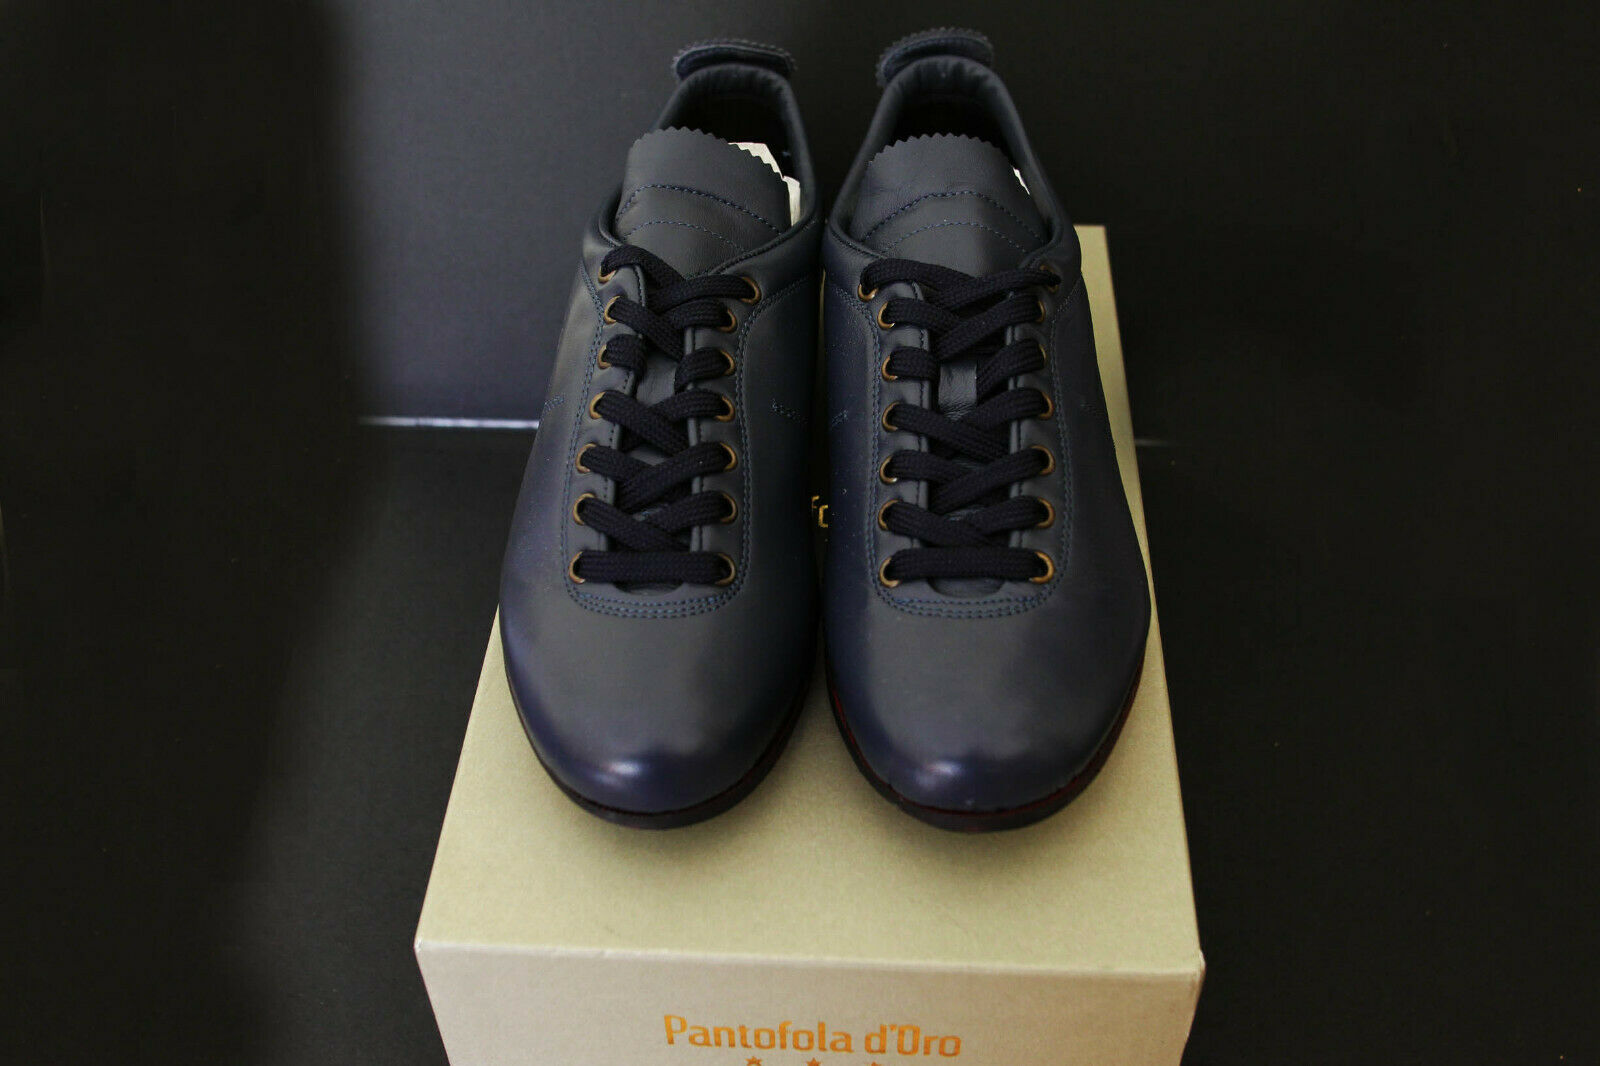 Pantofola d'gold Sneakers Superstar  bluee Leather 50% OFF   Retail 320,00 Euro